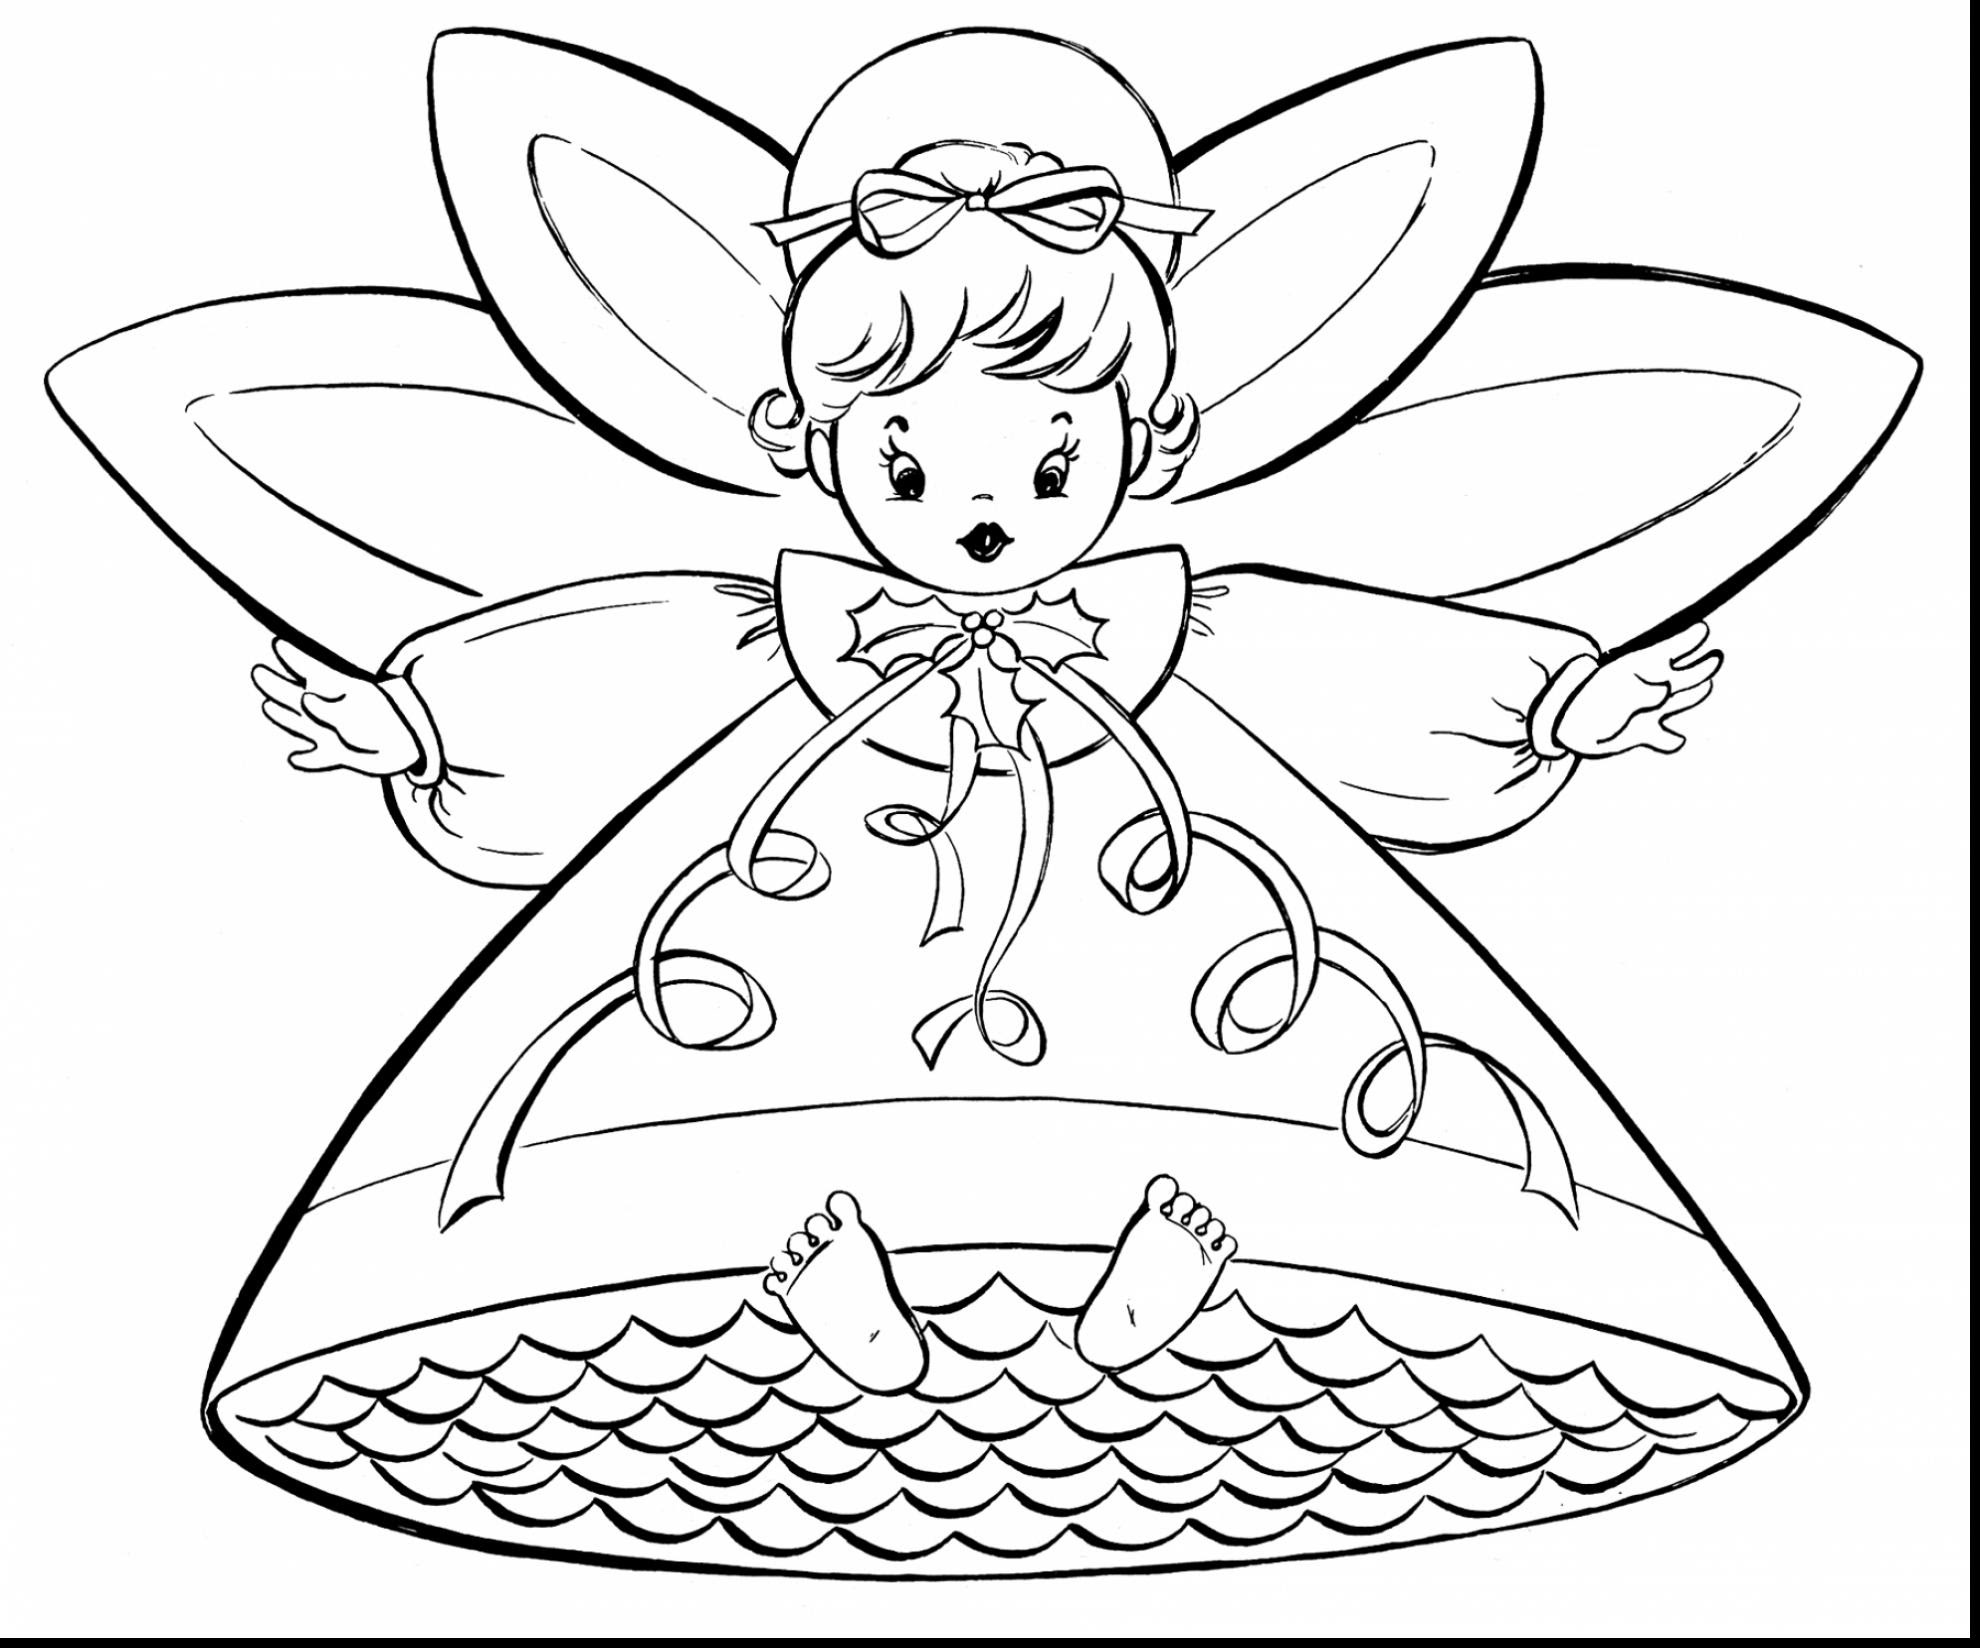 Free Fairy Coloring Pages For Adults To Print Coloring And Drawing